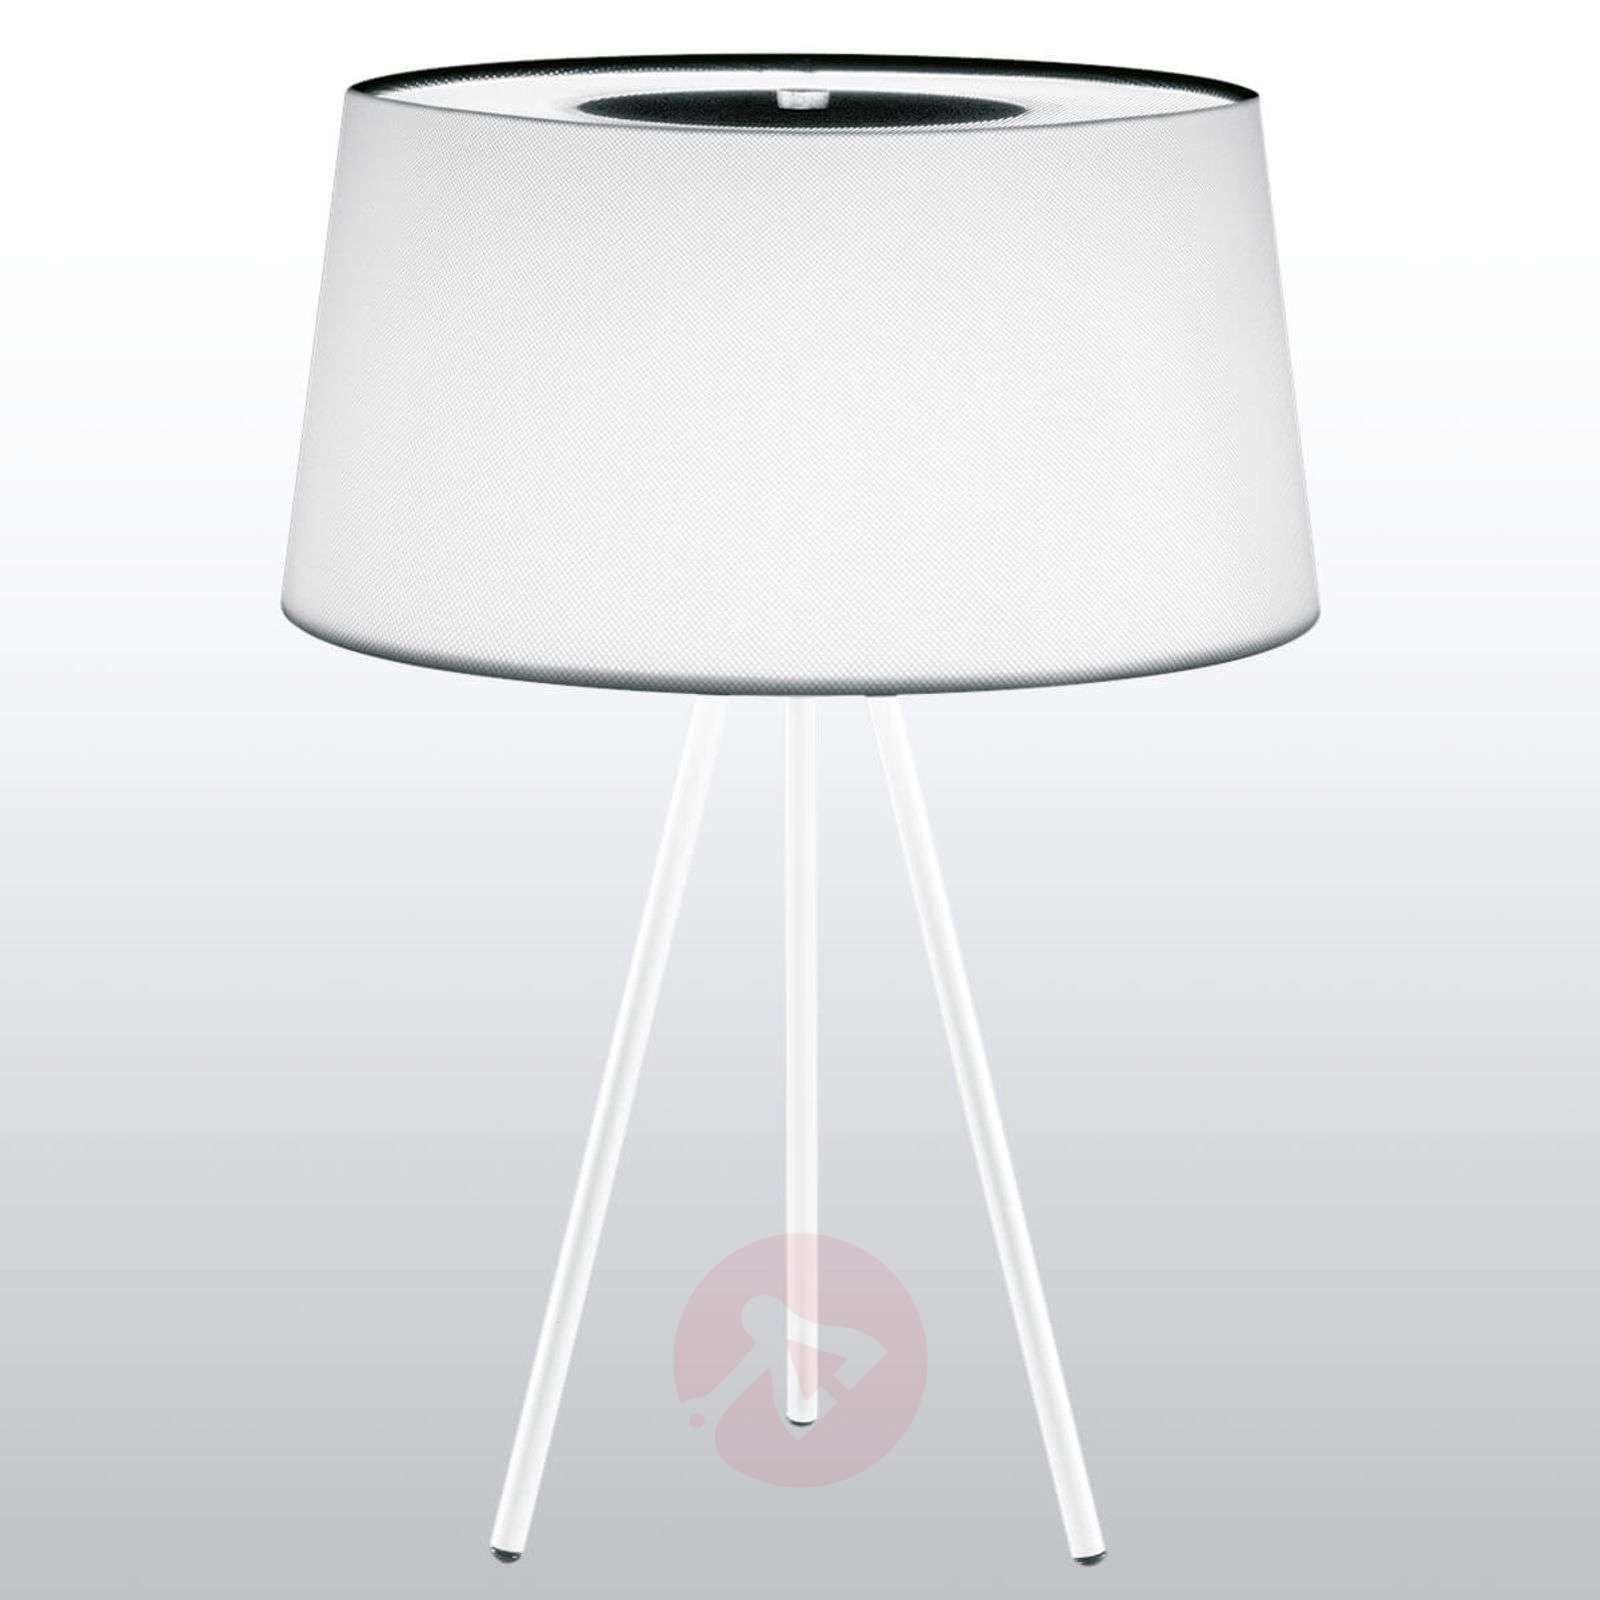 Tripod high-quality table lamp-5520063X-01